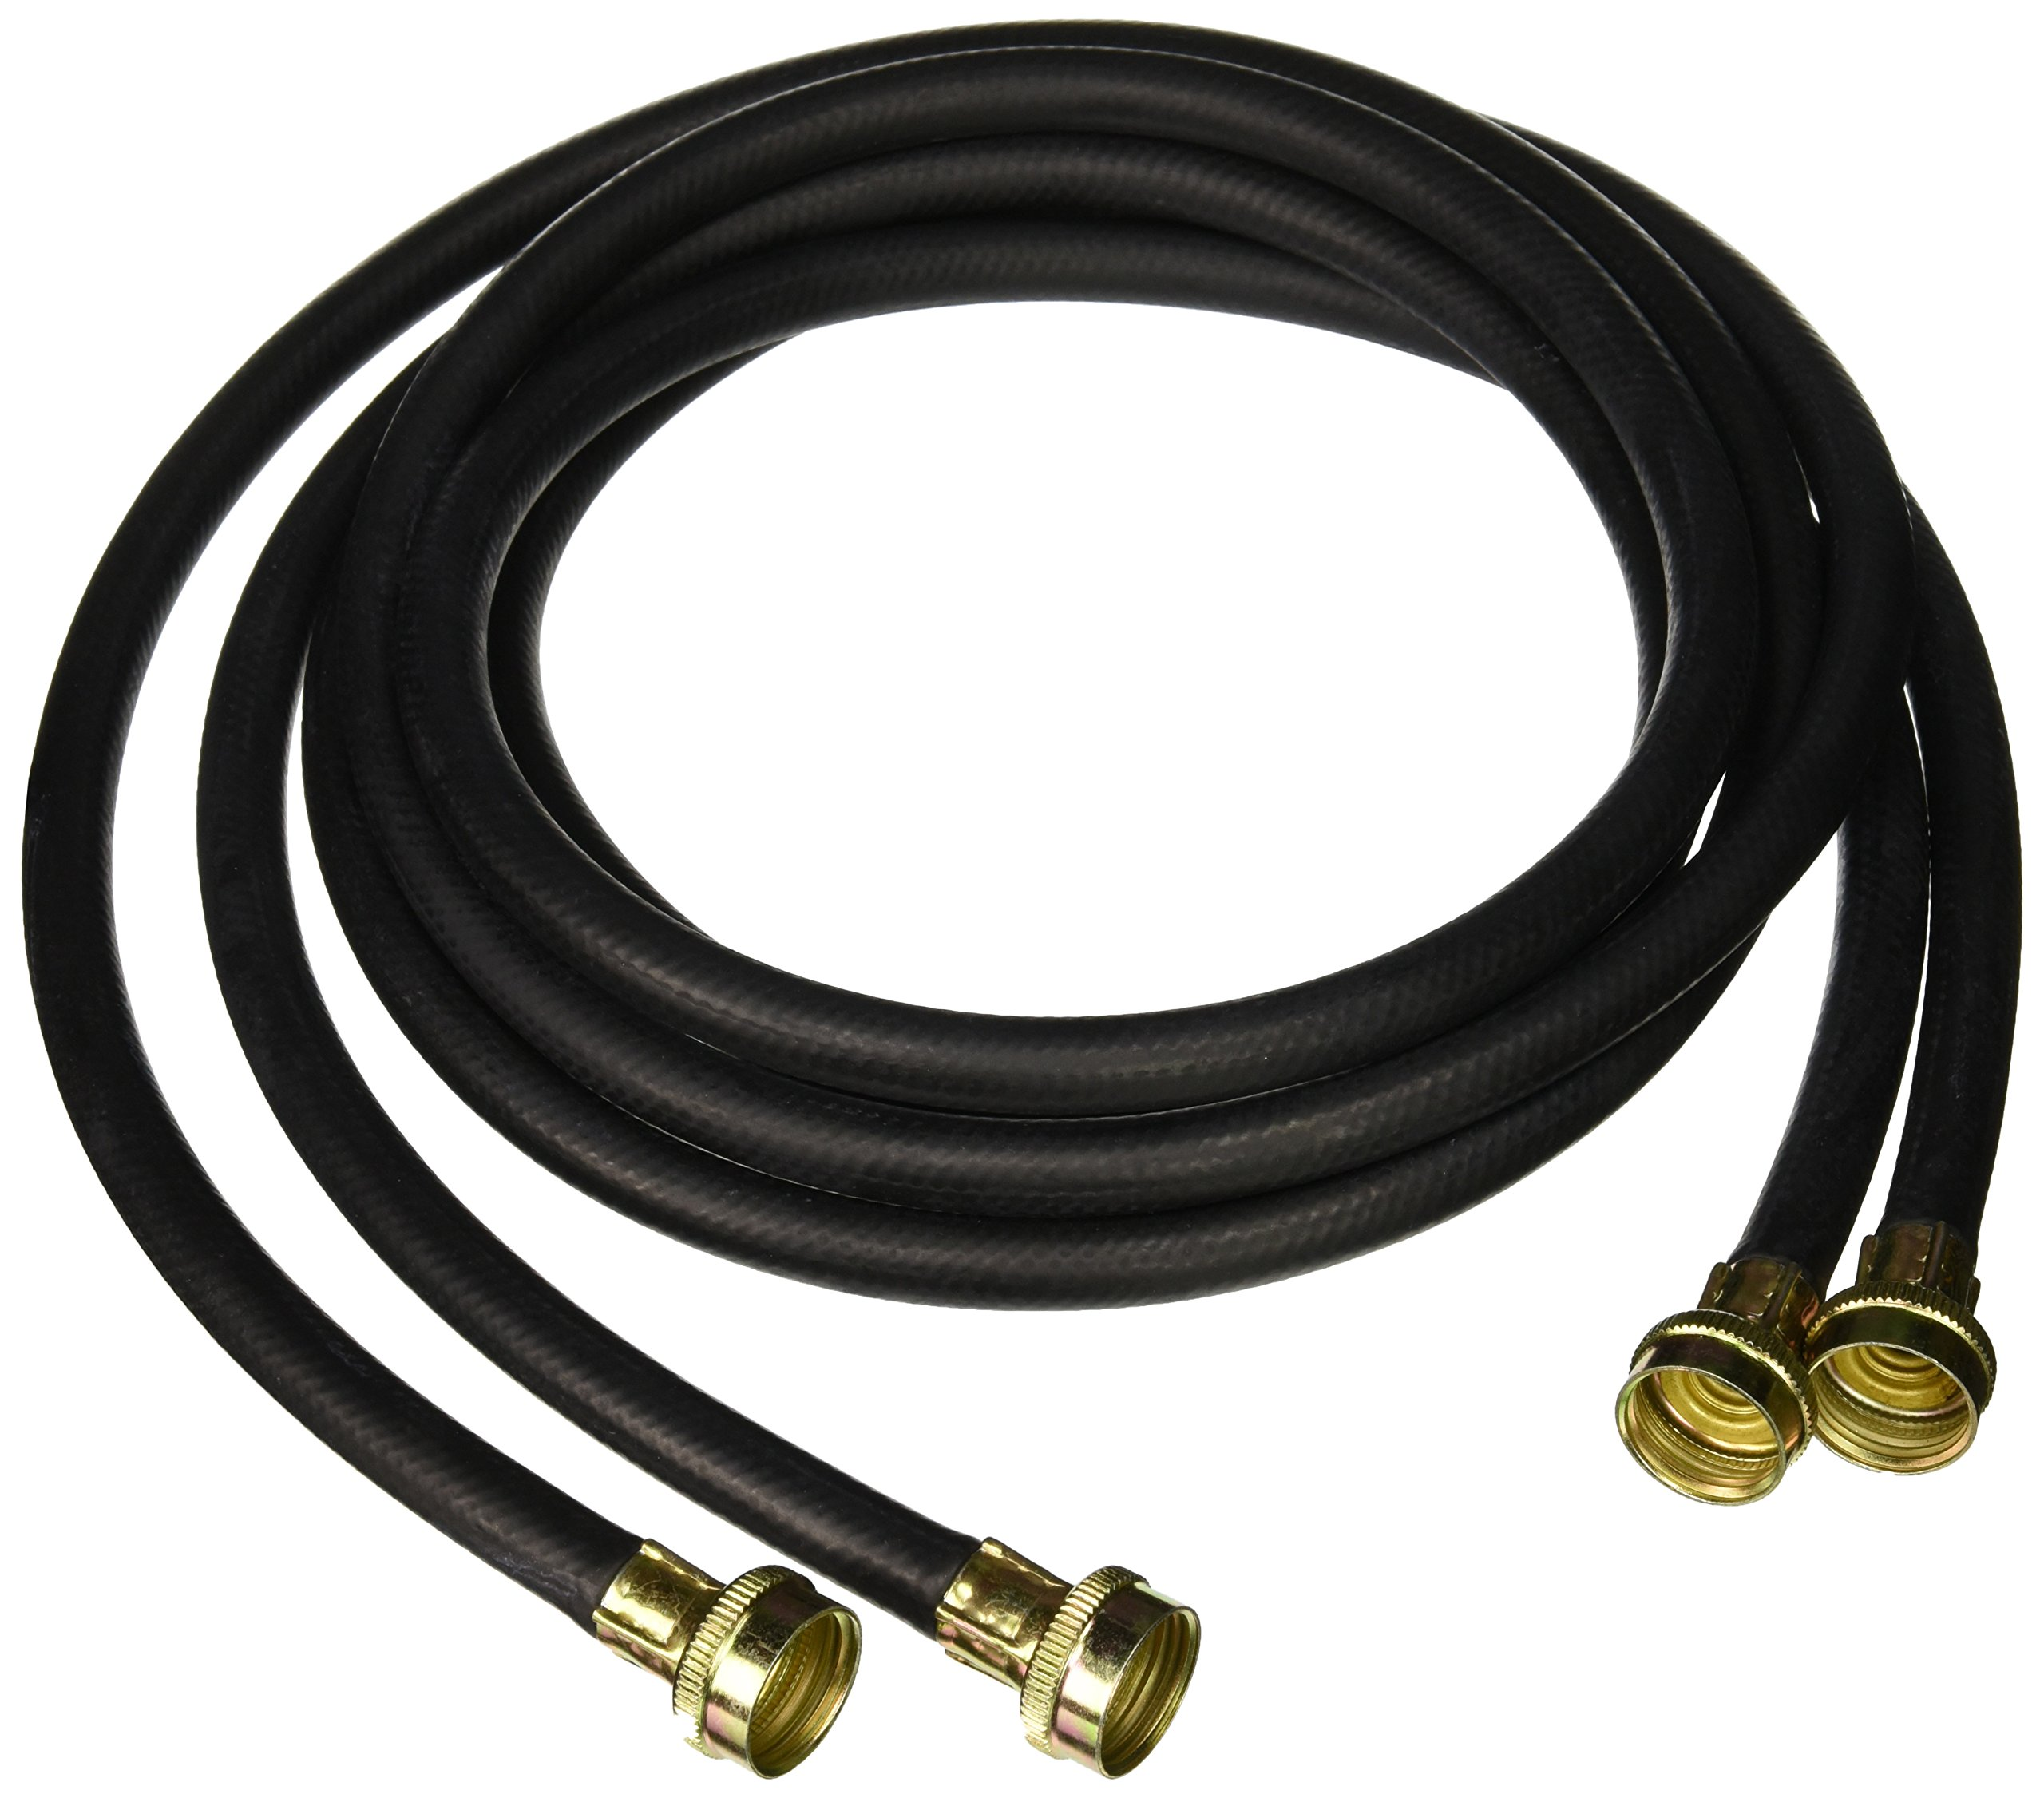 Certified Appliance Accessories Black Rubber Washing Machine Hose, 8 Foot, Hot/Cold Twin Pack